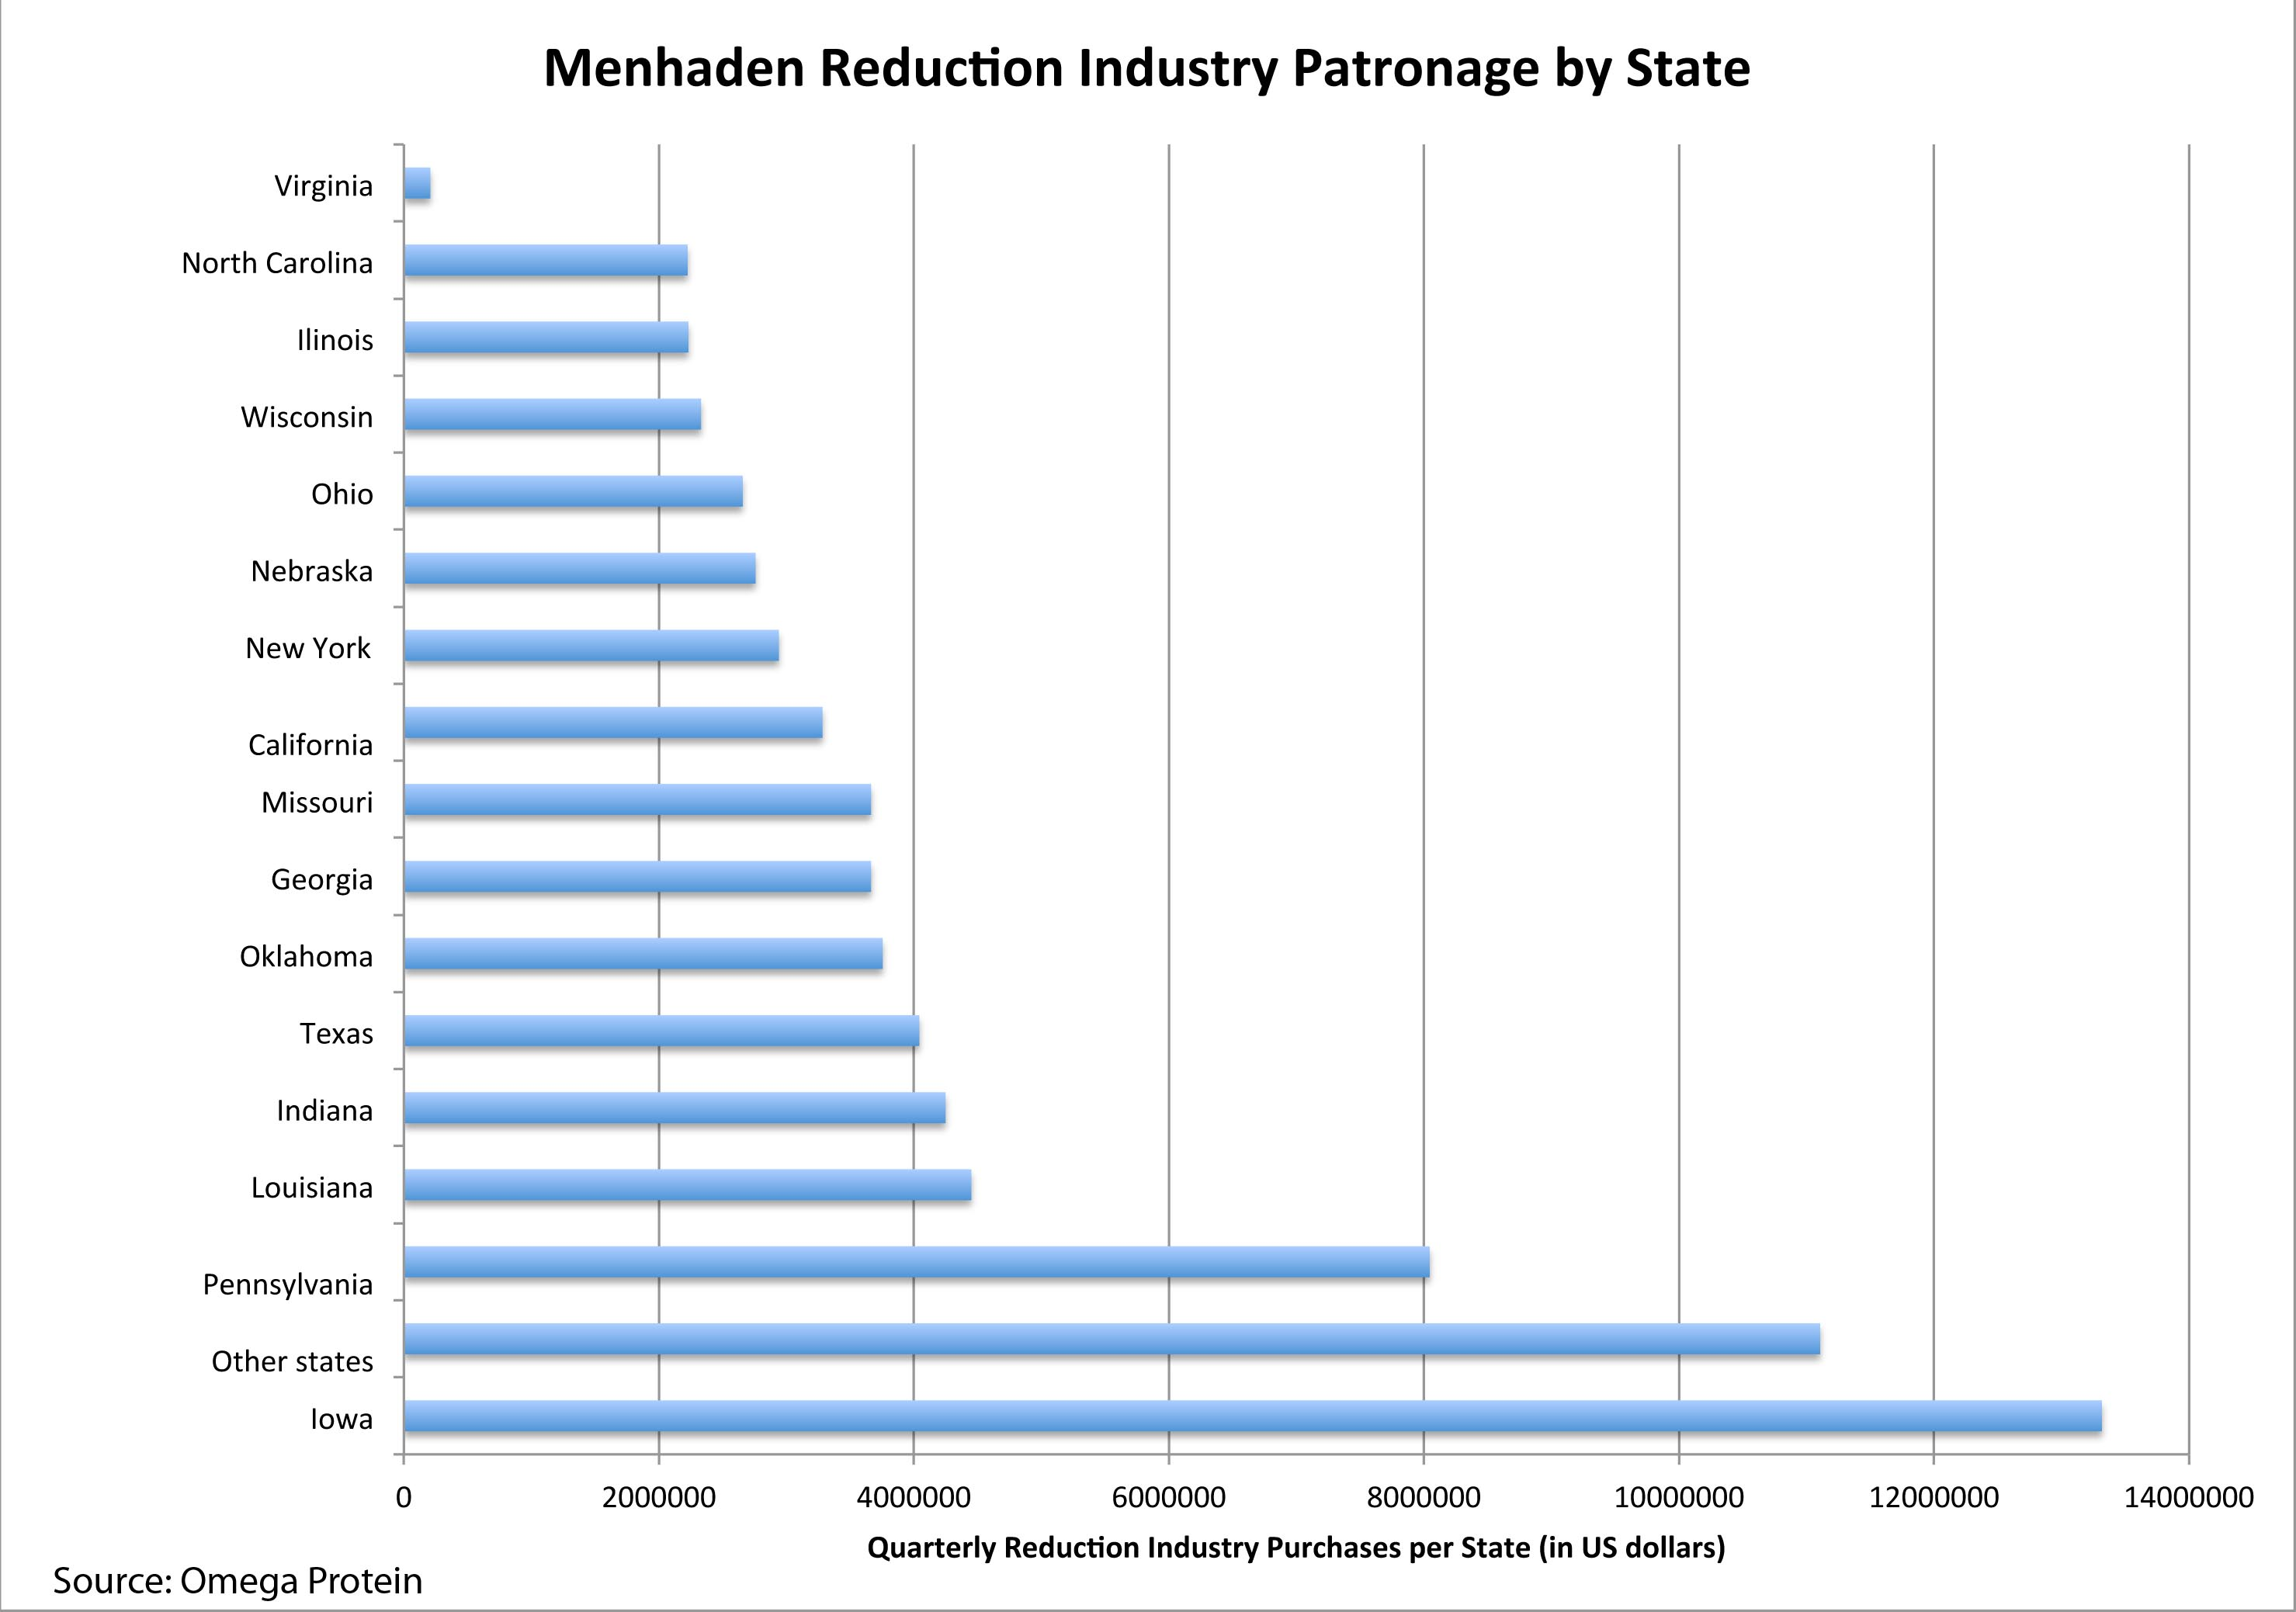 Public Trust Project S Economic Analysis Of The Menhaden